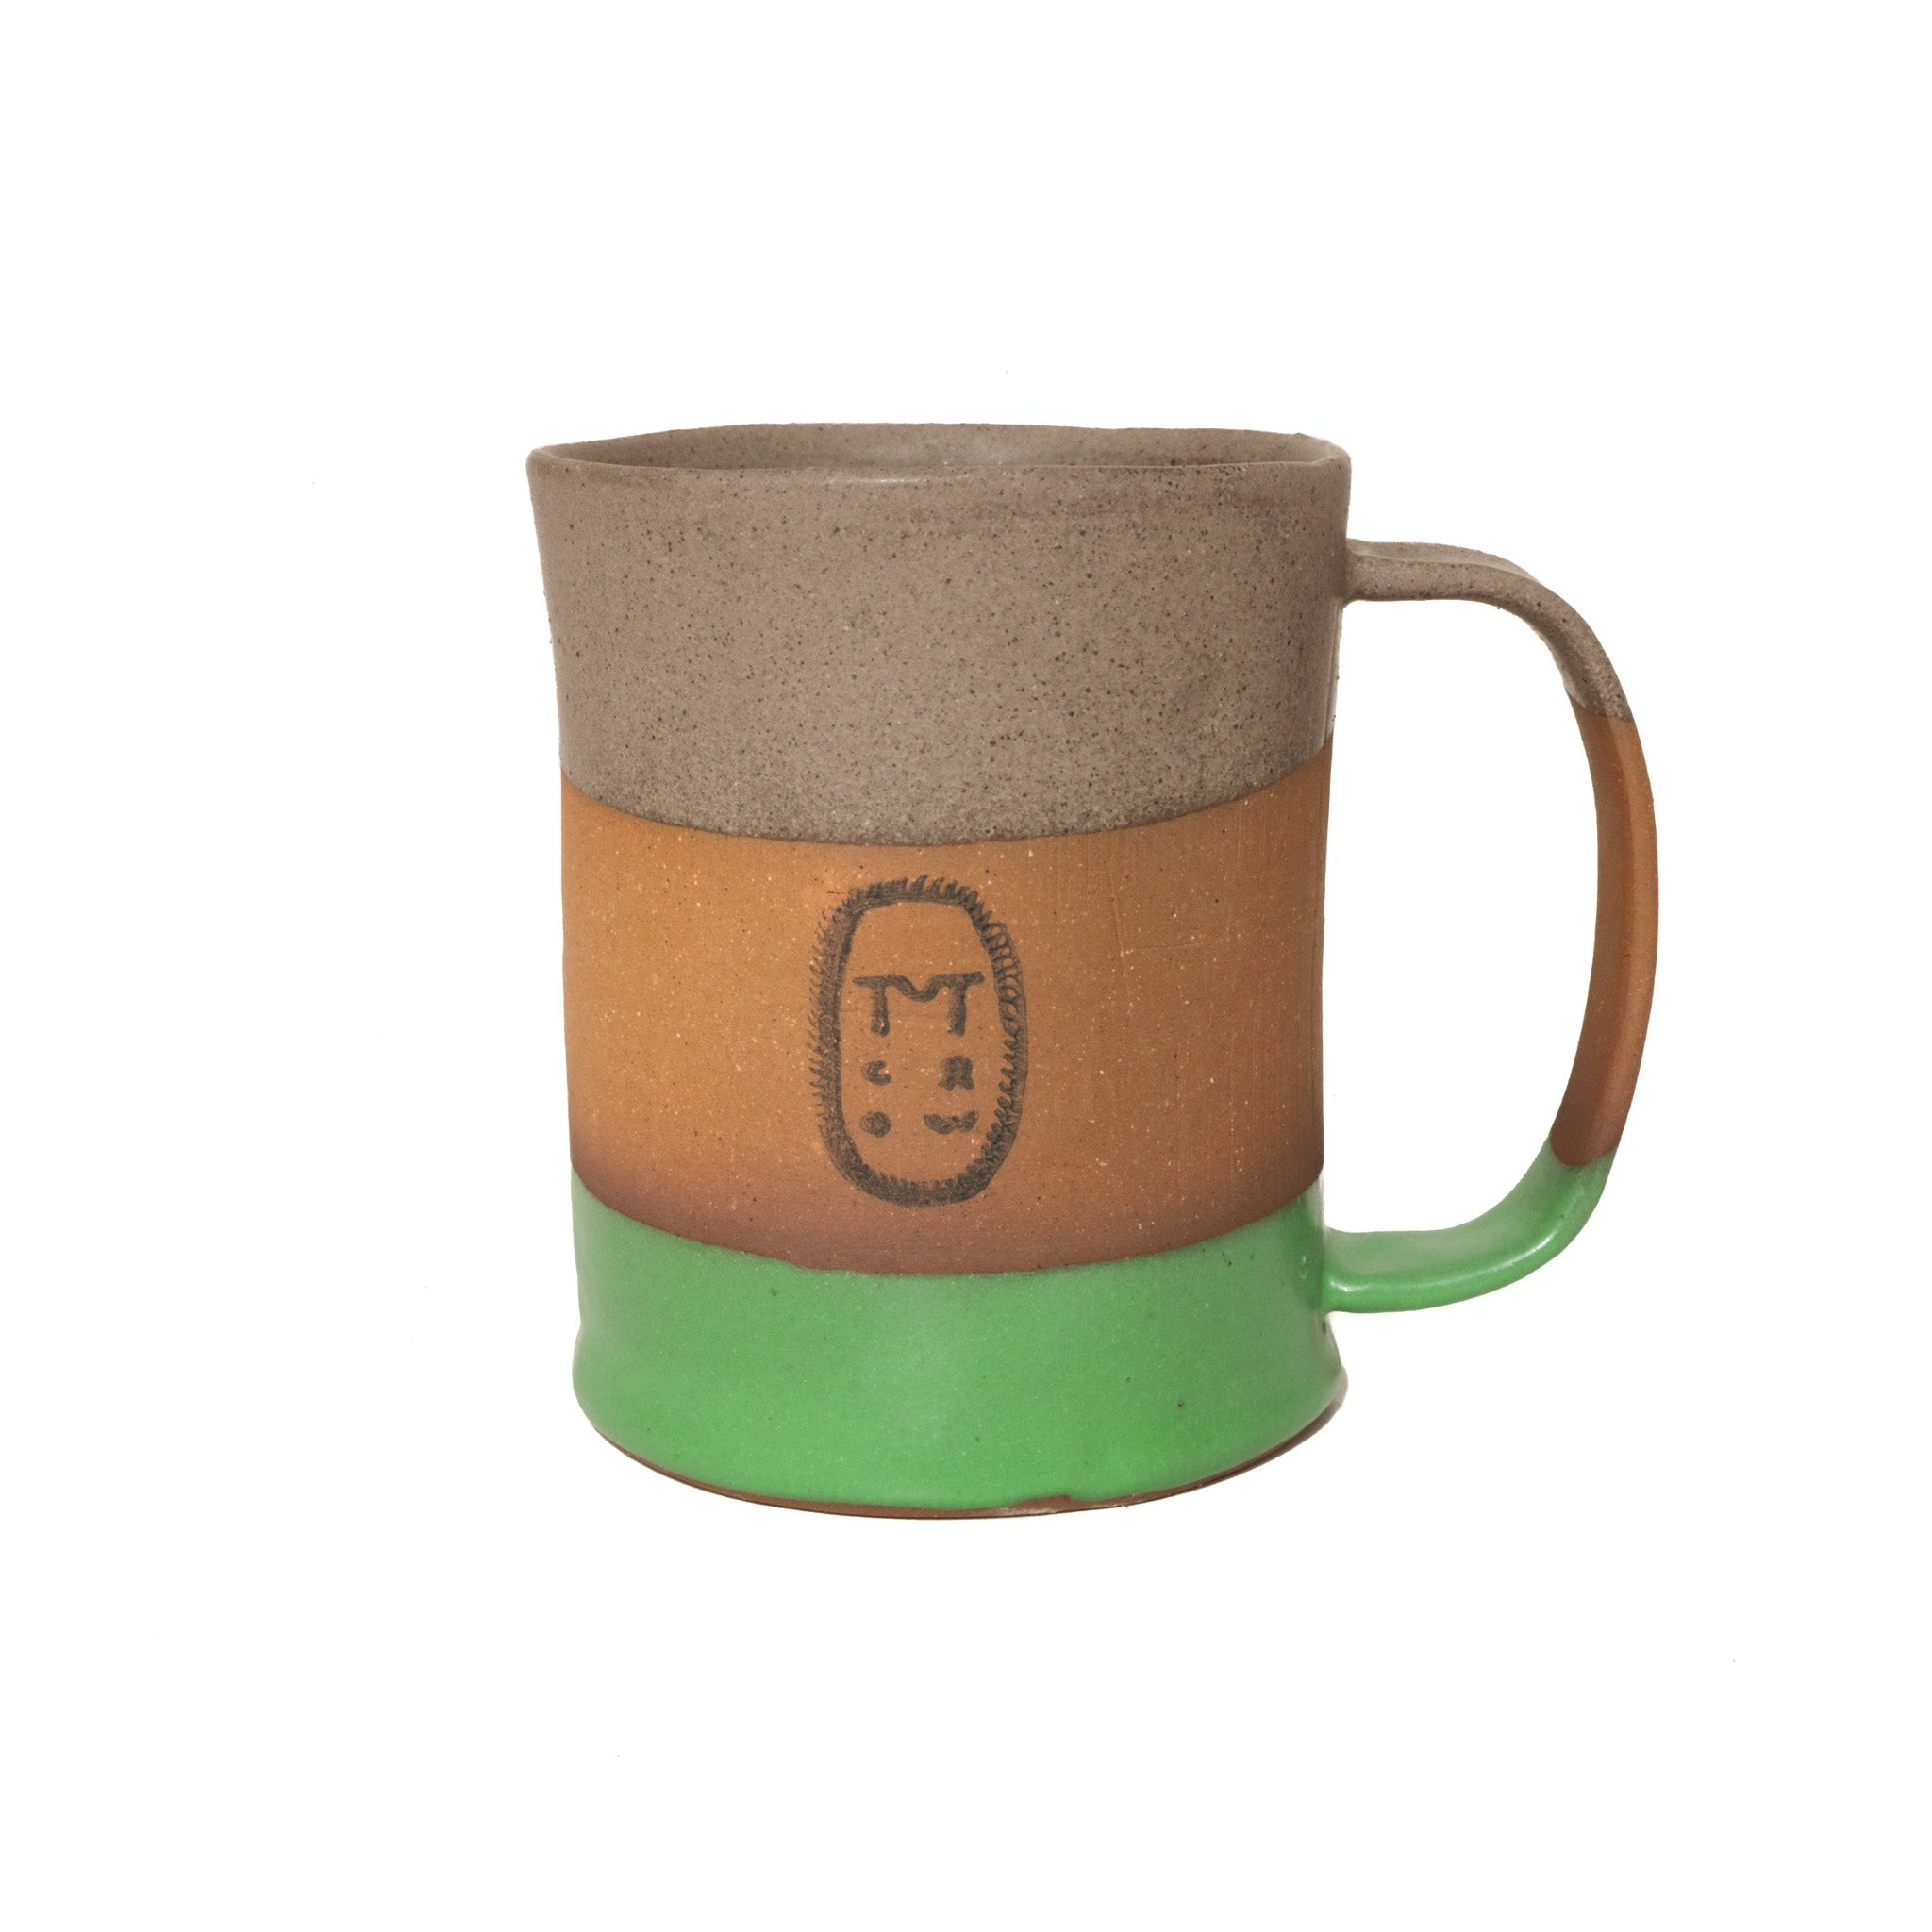 M. CROW MUG - AXE SERIES 01